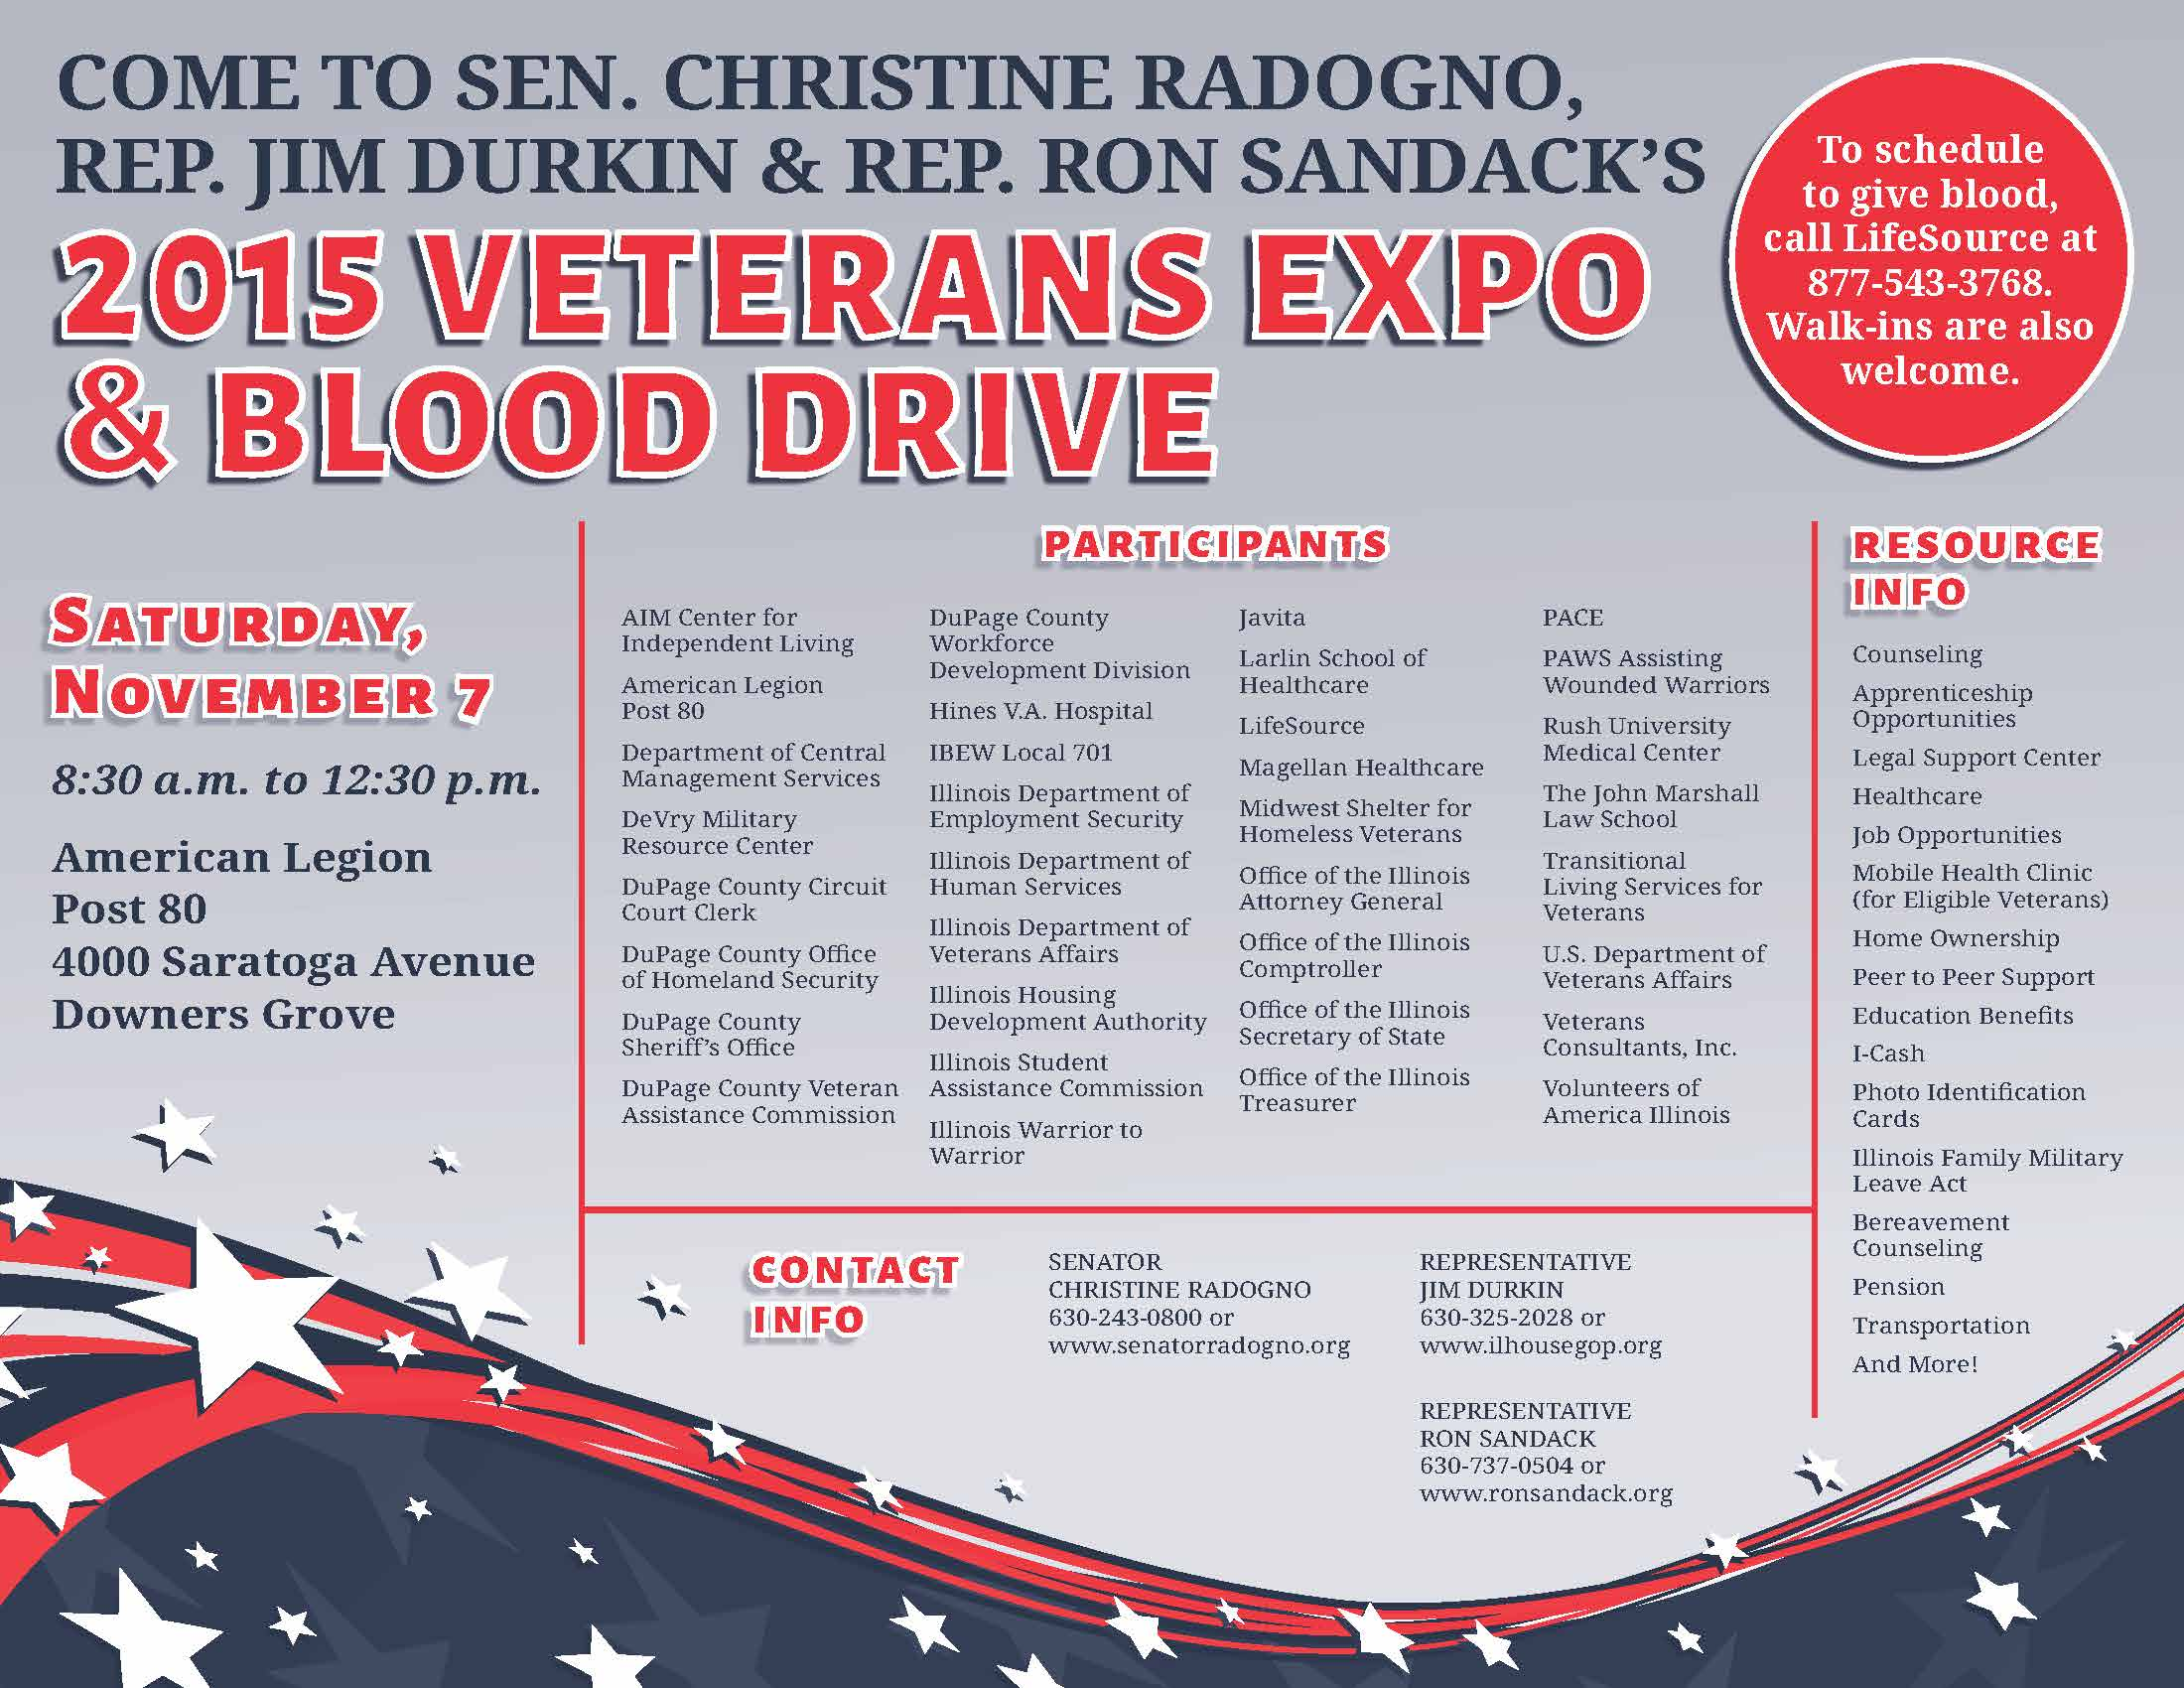 2015 Veteran's Expo & Blood Drive - Office of the Republican